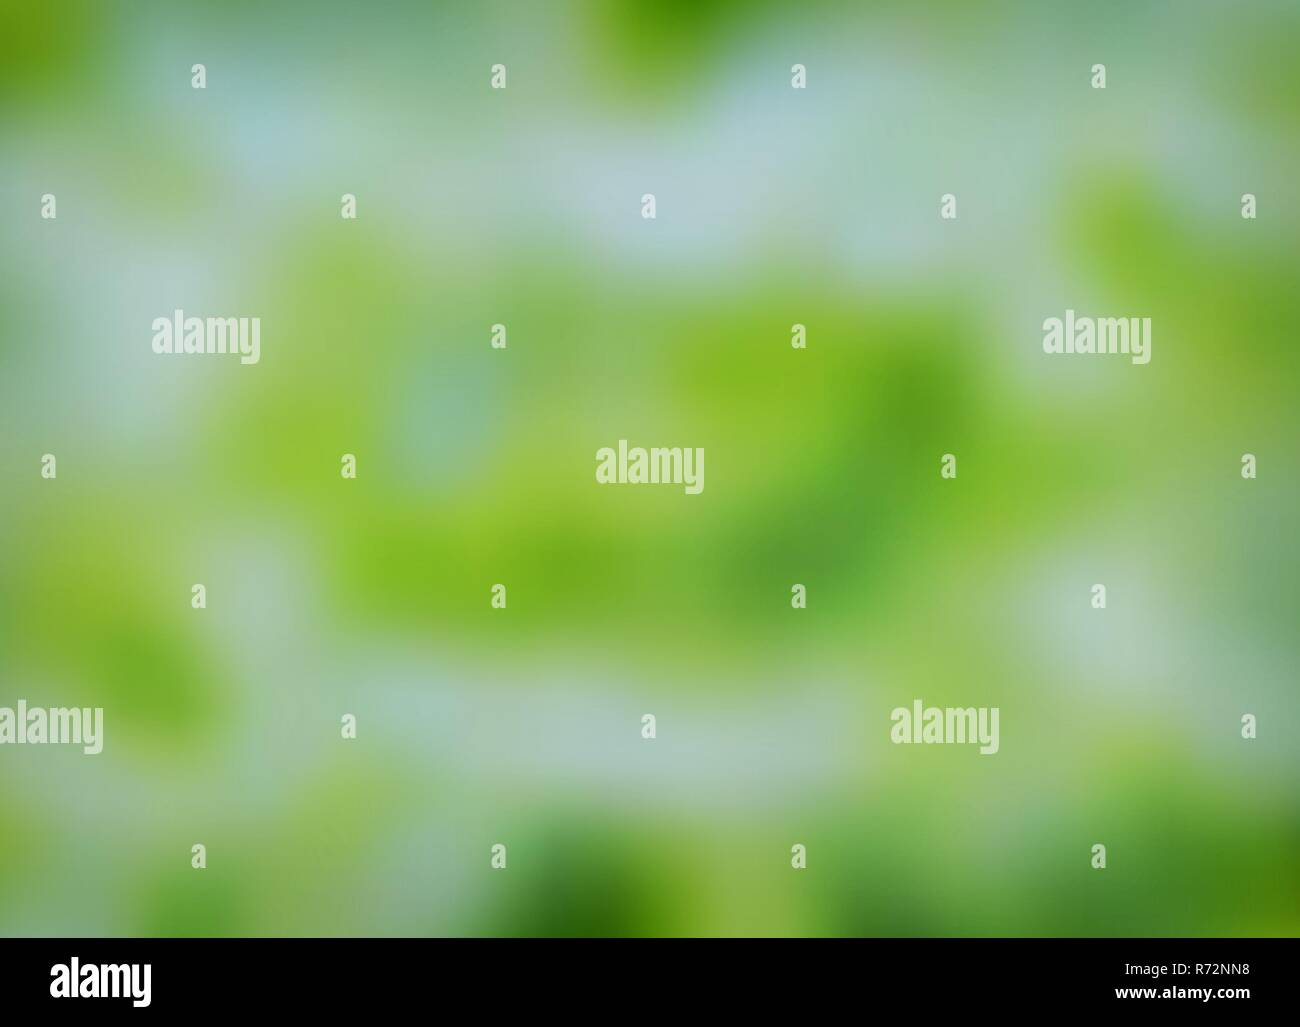 Abstract green blurred background. Nature gradient backdrop - Stock Vector